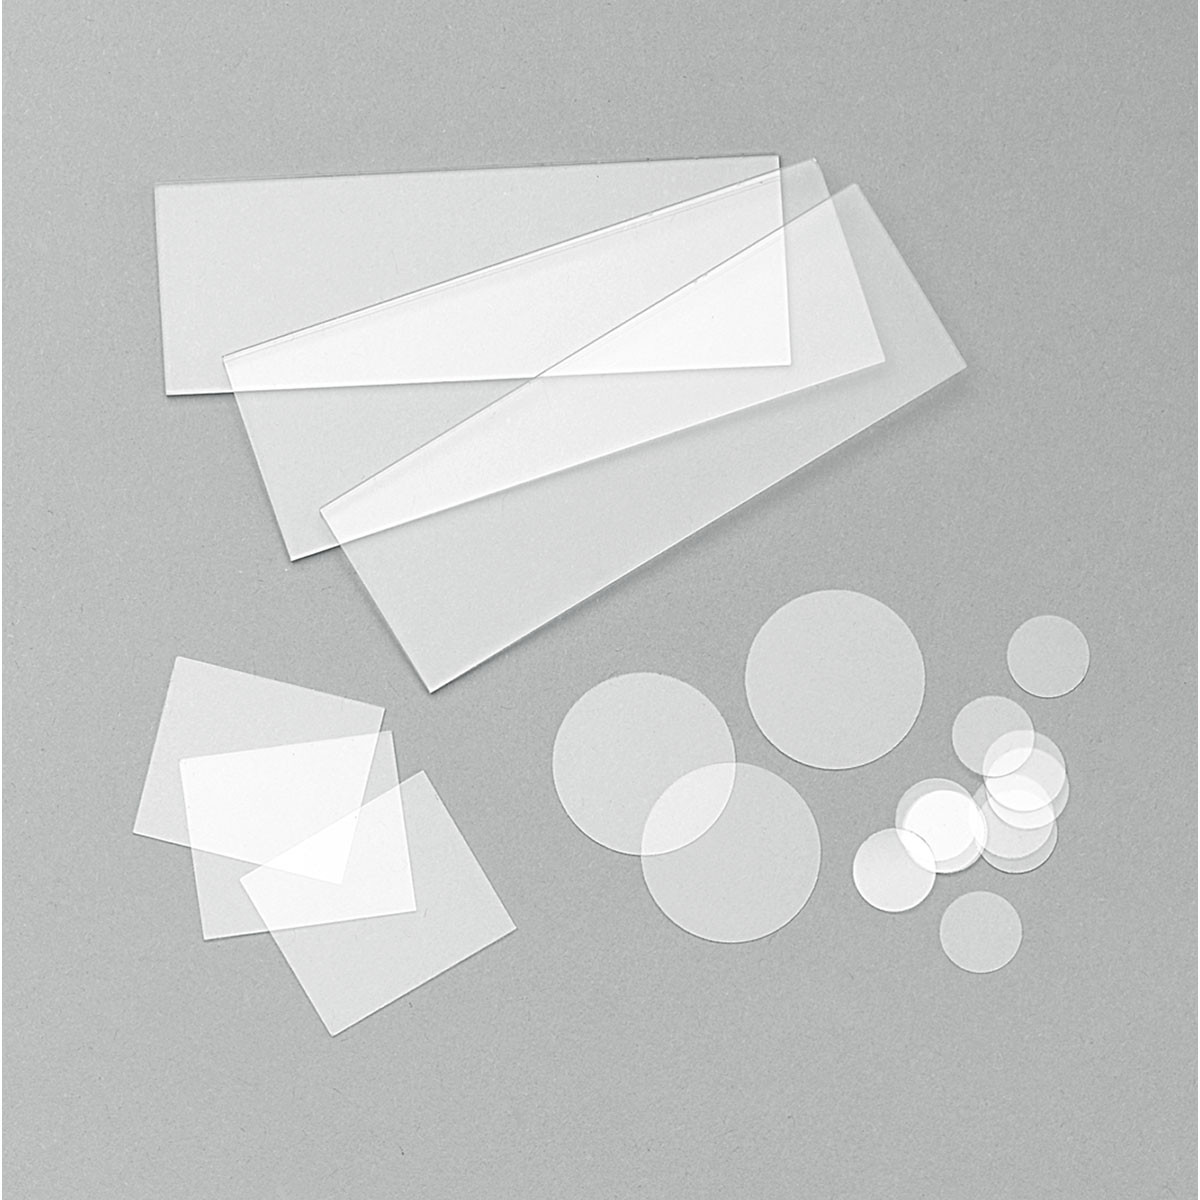 Cover Slips No. 0 18x18mm (100/ pack)